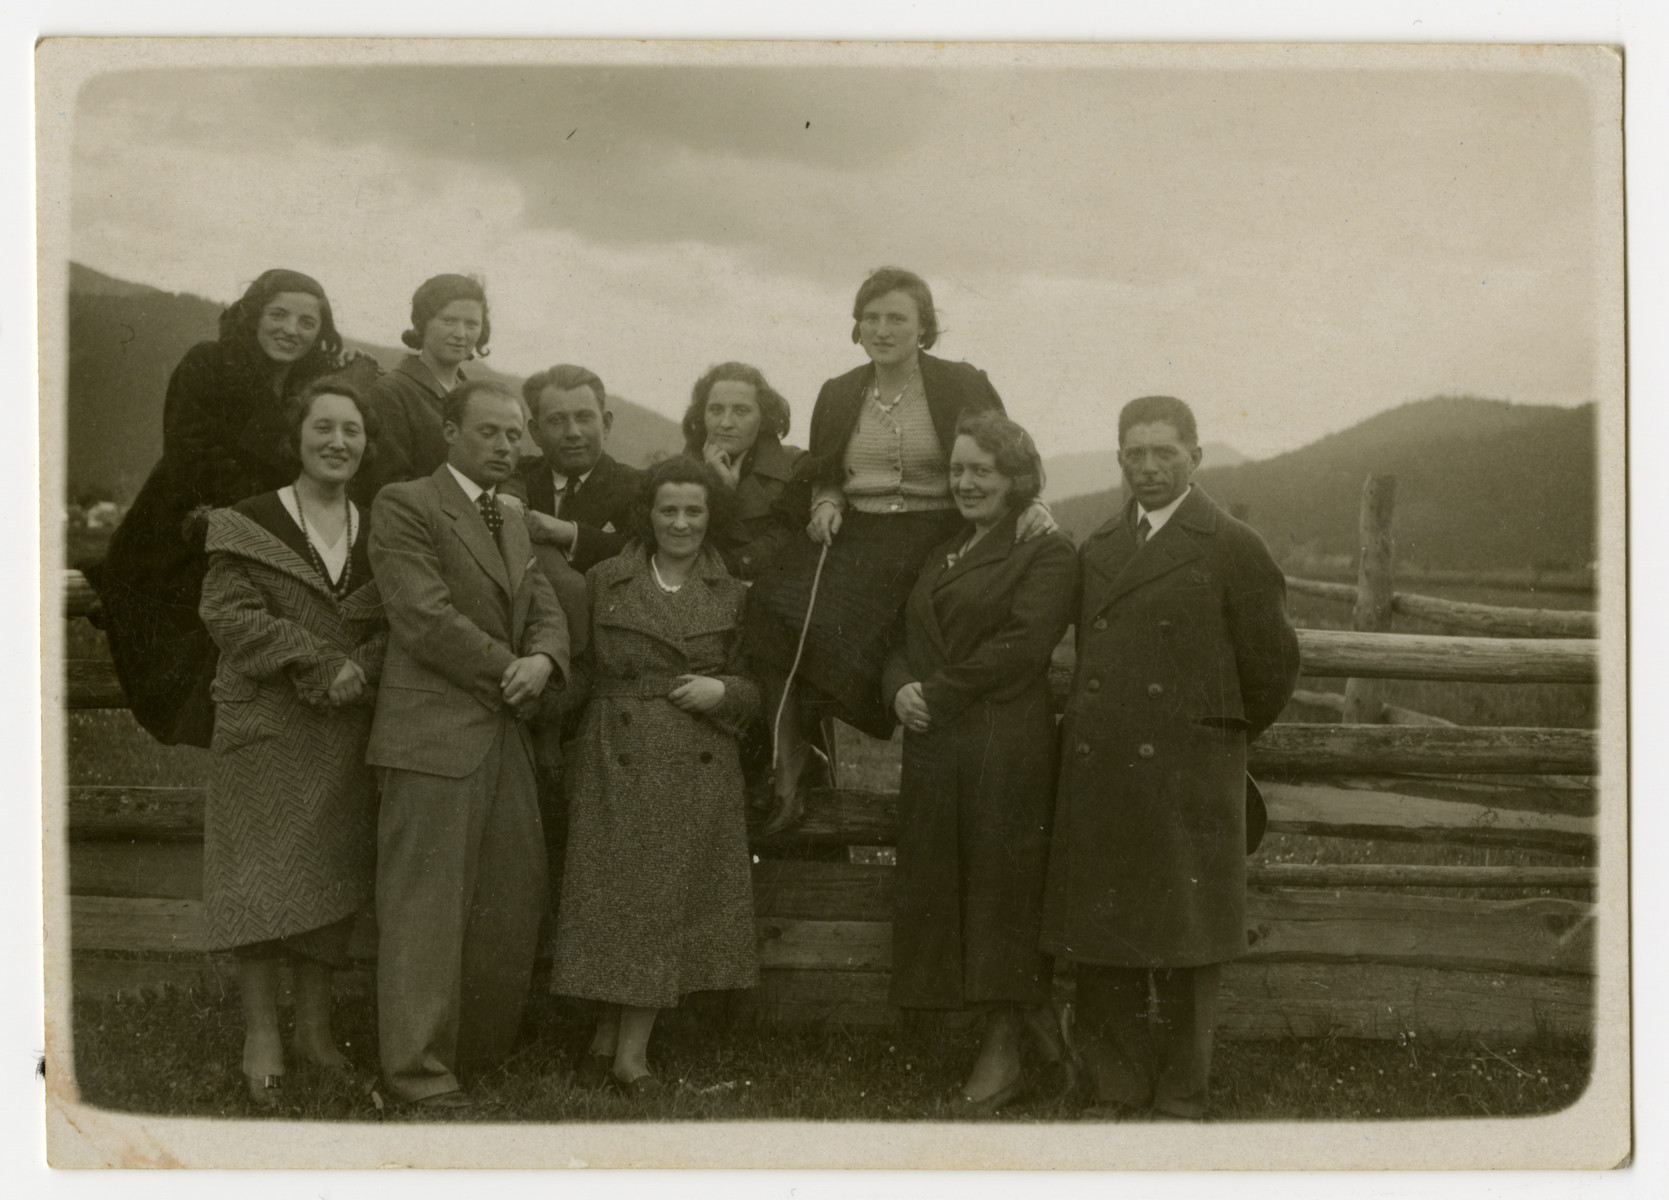 A group of Jewish family and friends stands in the Skole countryside by a fence.  Pictured standing in the first row, from left: Szajna Friedler, Beno Rozenberg, unidentified; Lotka Friedler and unidentified.  In the second row, from left: unidentified; Mania Rozenberg; Moshe Josefsberg; unidentified and Frieda Rozenberg Josefsberg.